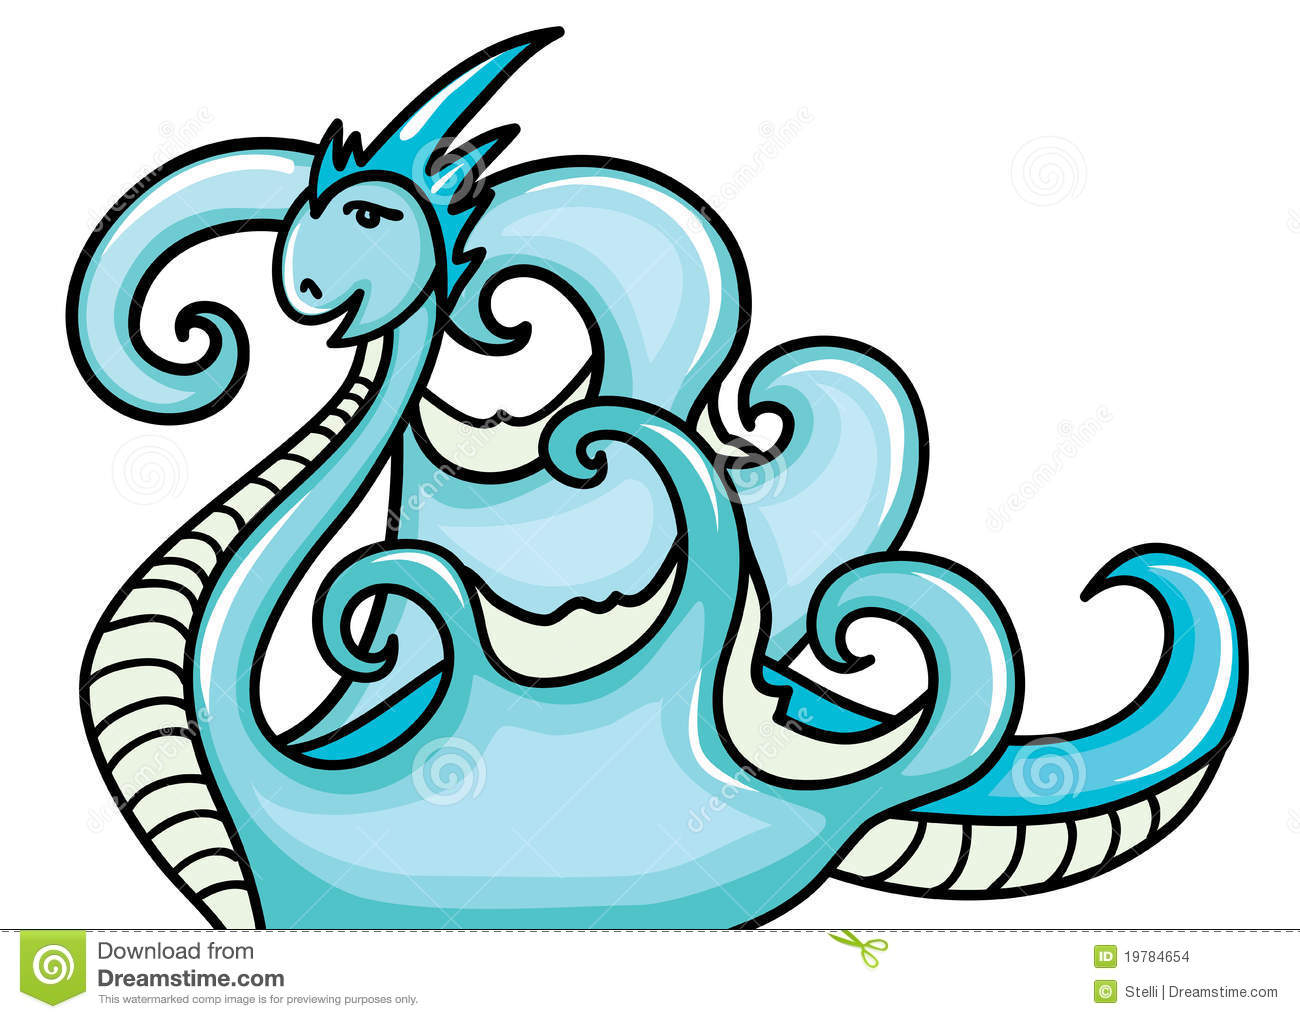 Clipart water dragon.